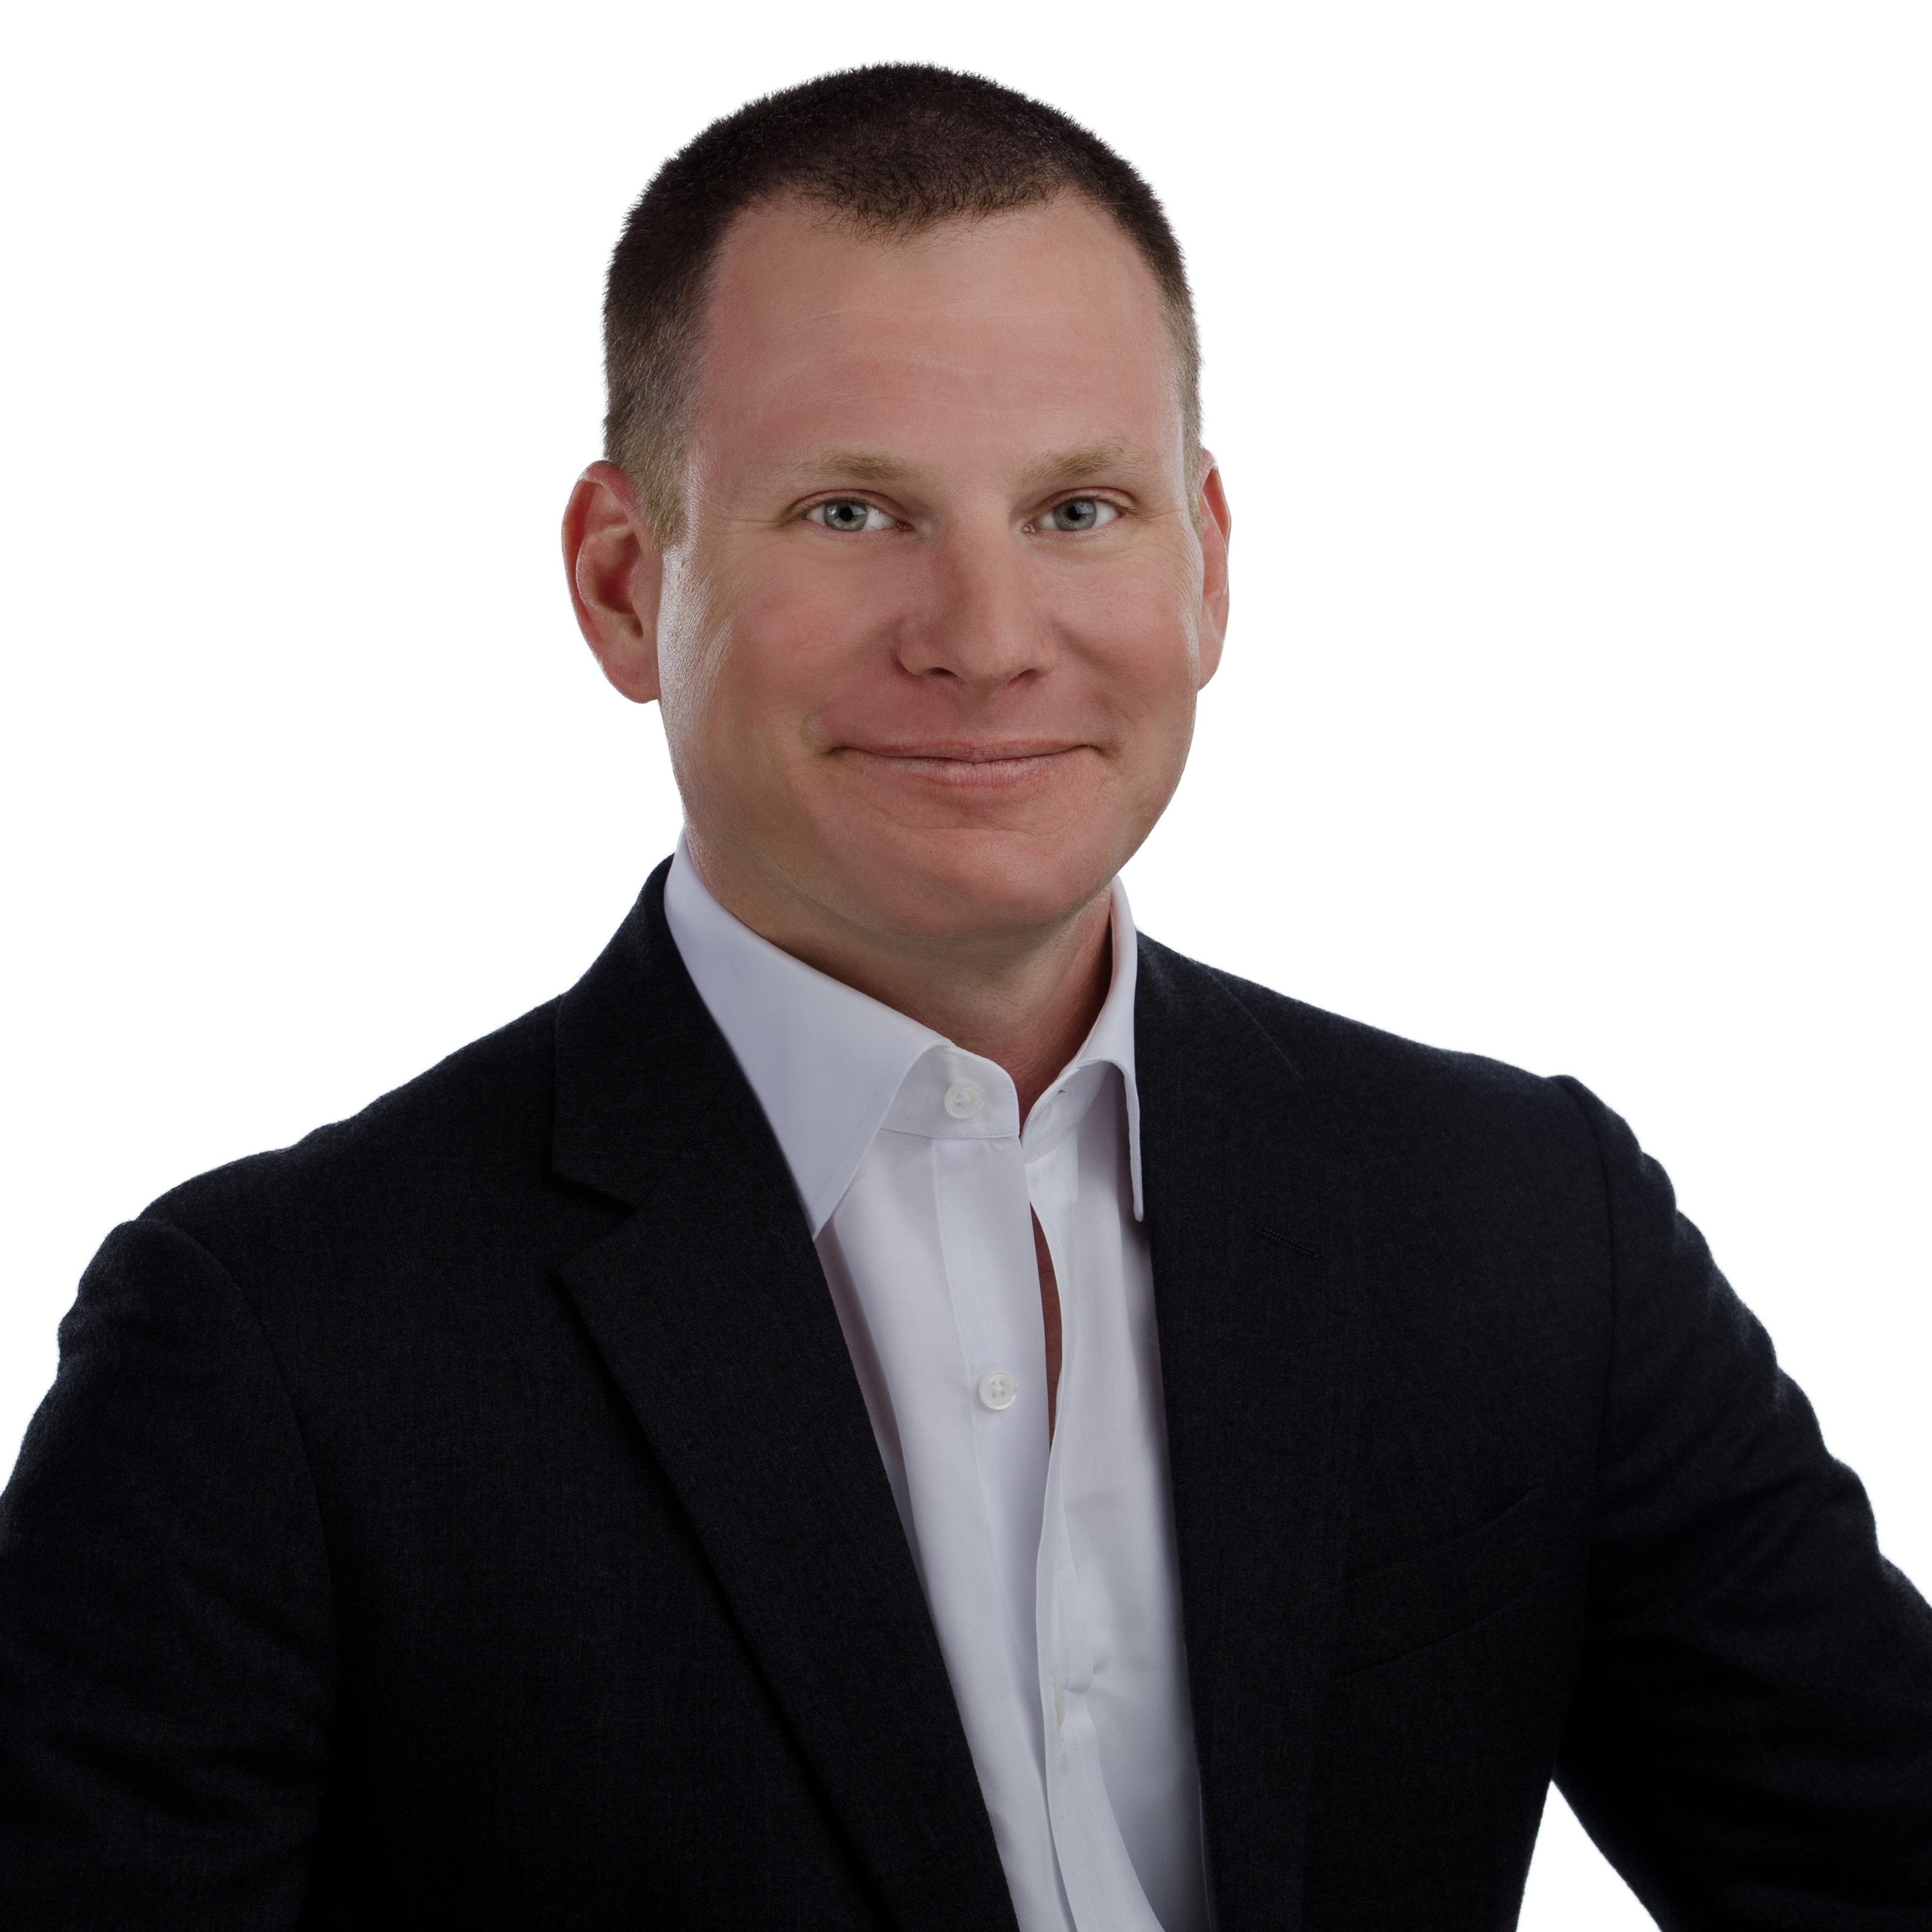 Robert Reeves, CTO, co-founderof Datical